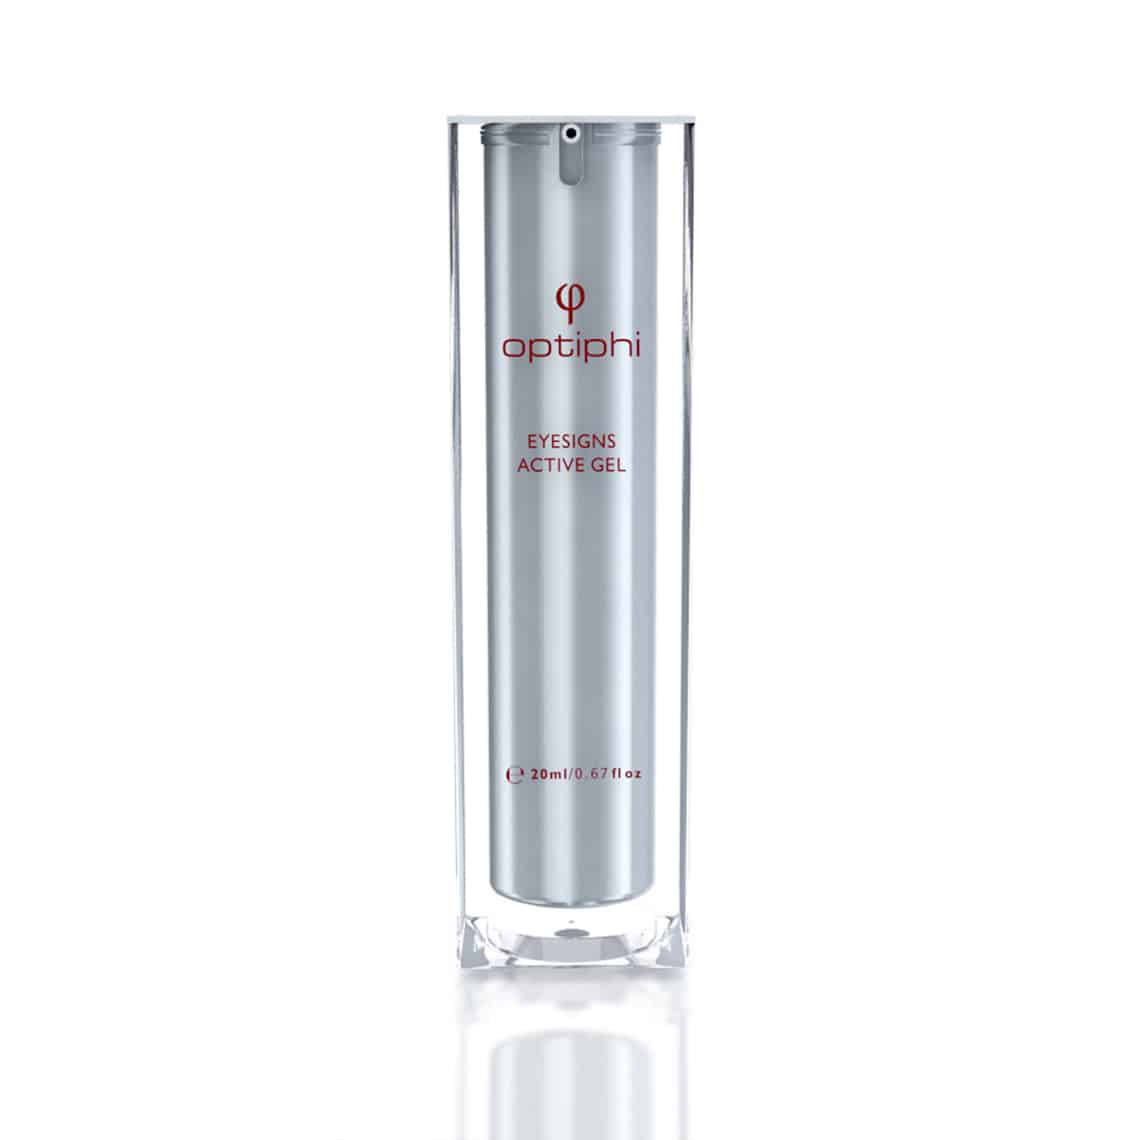 Optiphi Eyesigns Activegel